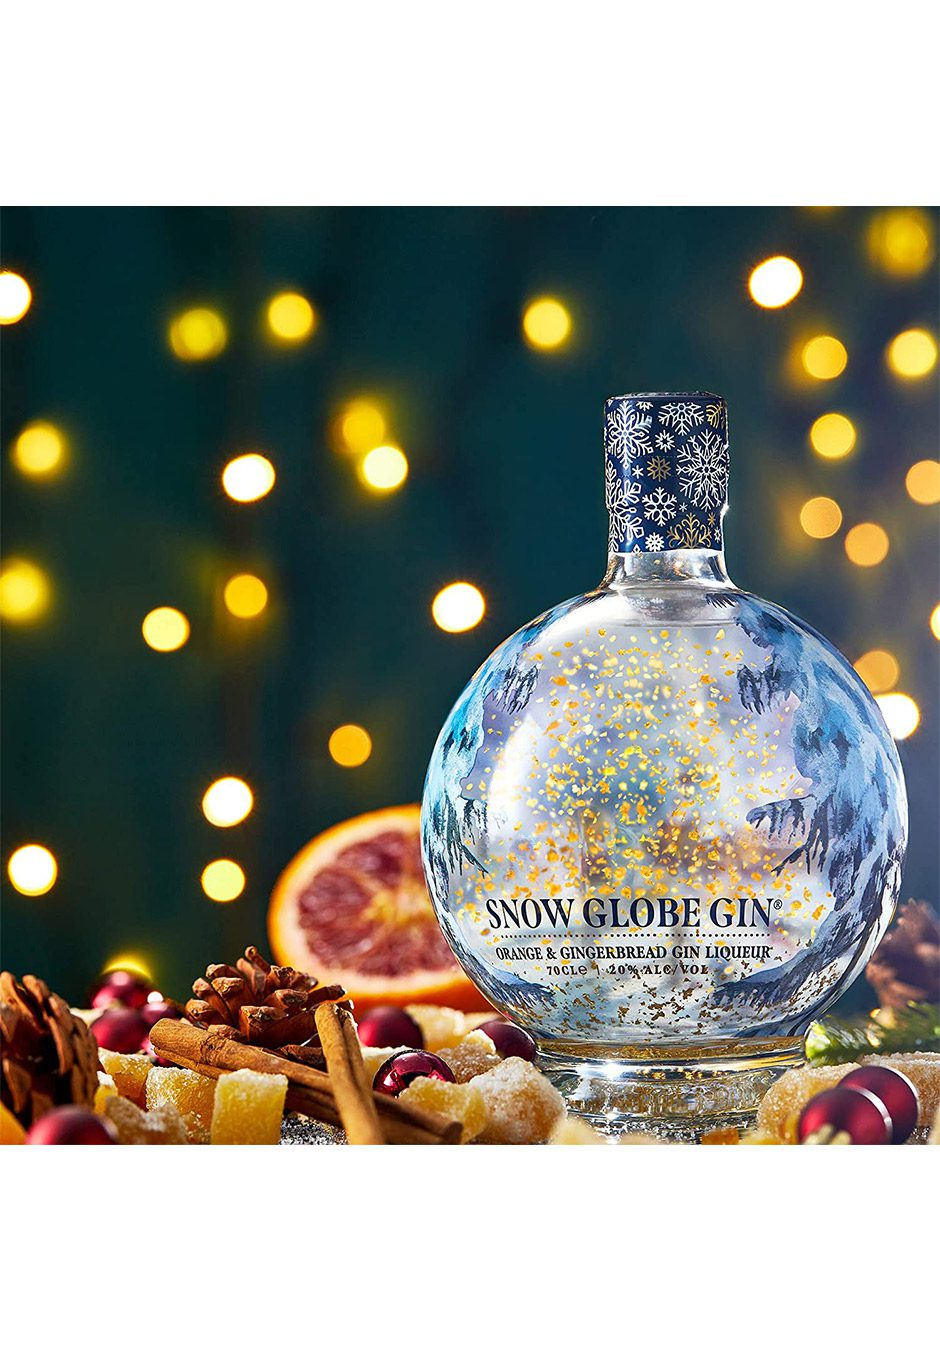 Snow Globe Gin 70cl | Orange And Gingerbread Liqueur | KeiCo Drinks